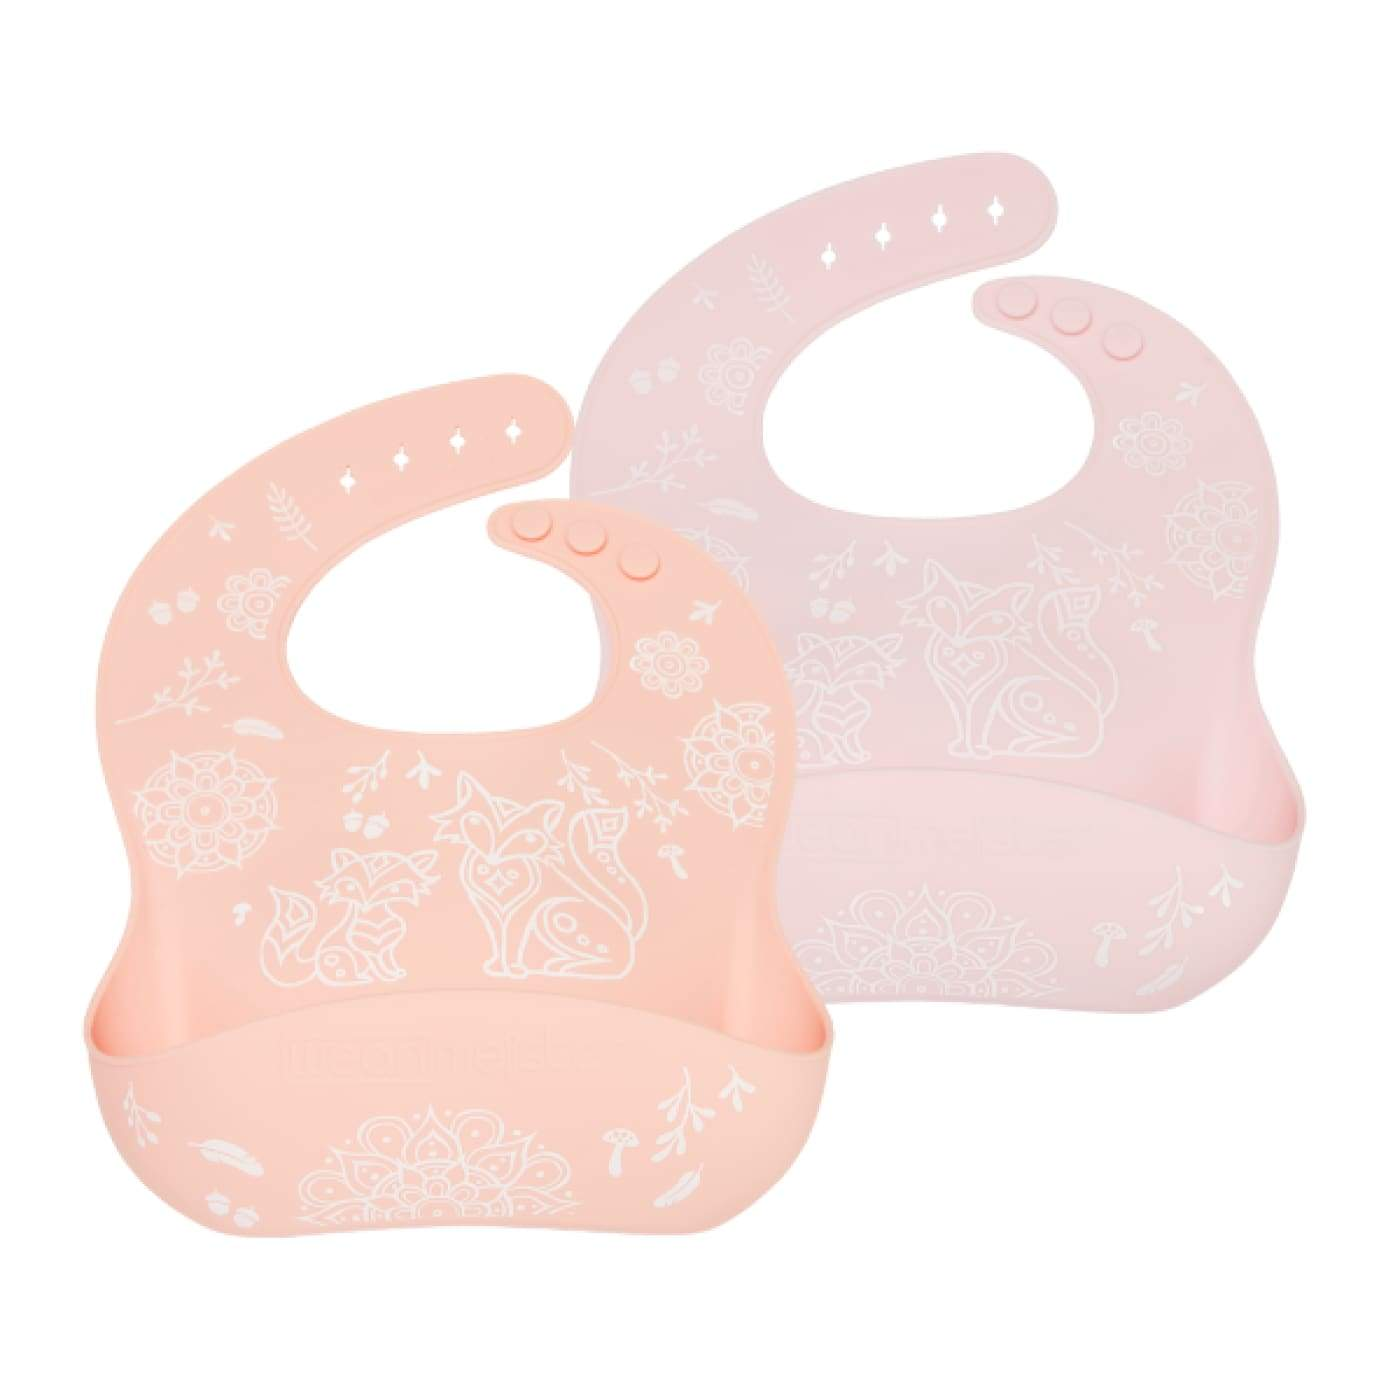 Weanmeister Easy Rinse Bibs - Funky Fox 2PK - NURSING & FEEDING - BIBS/BURP CLOTHS